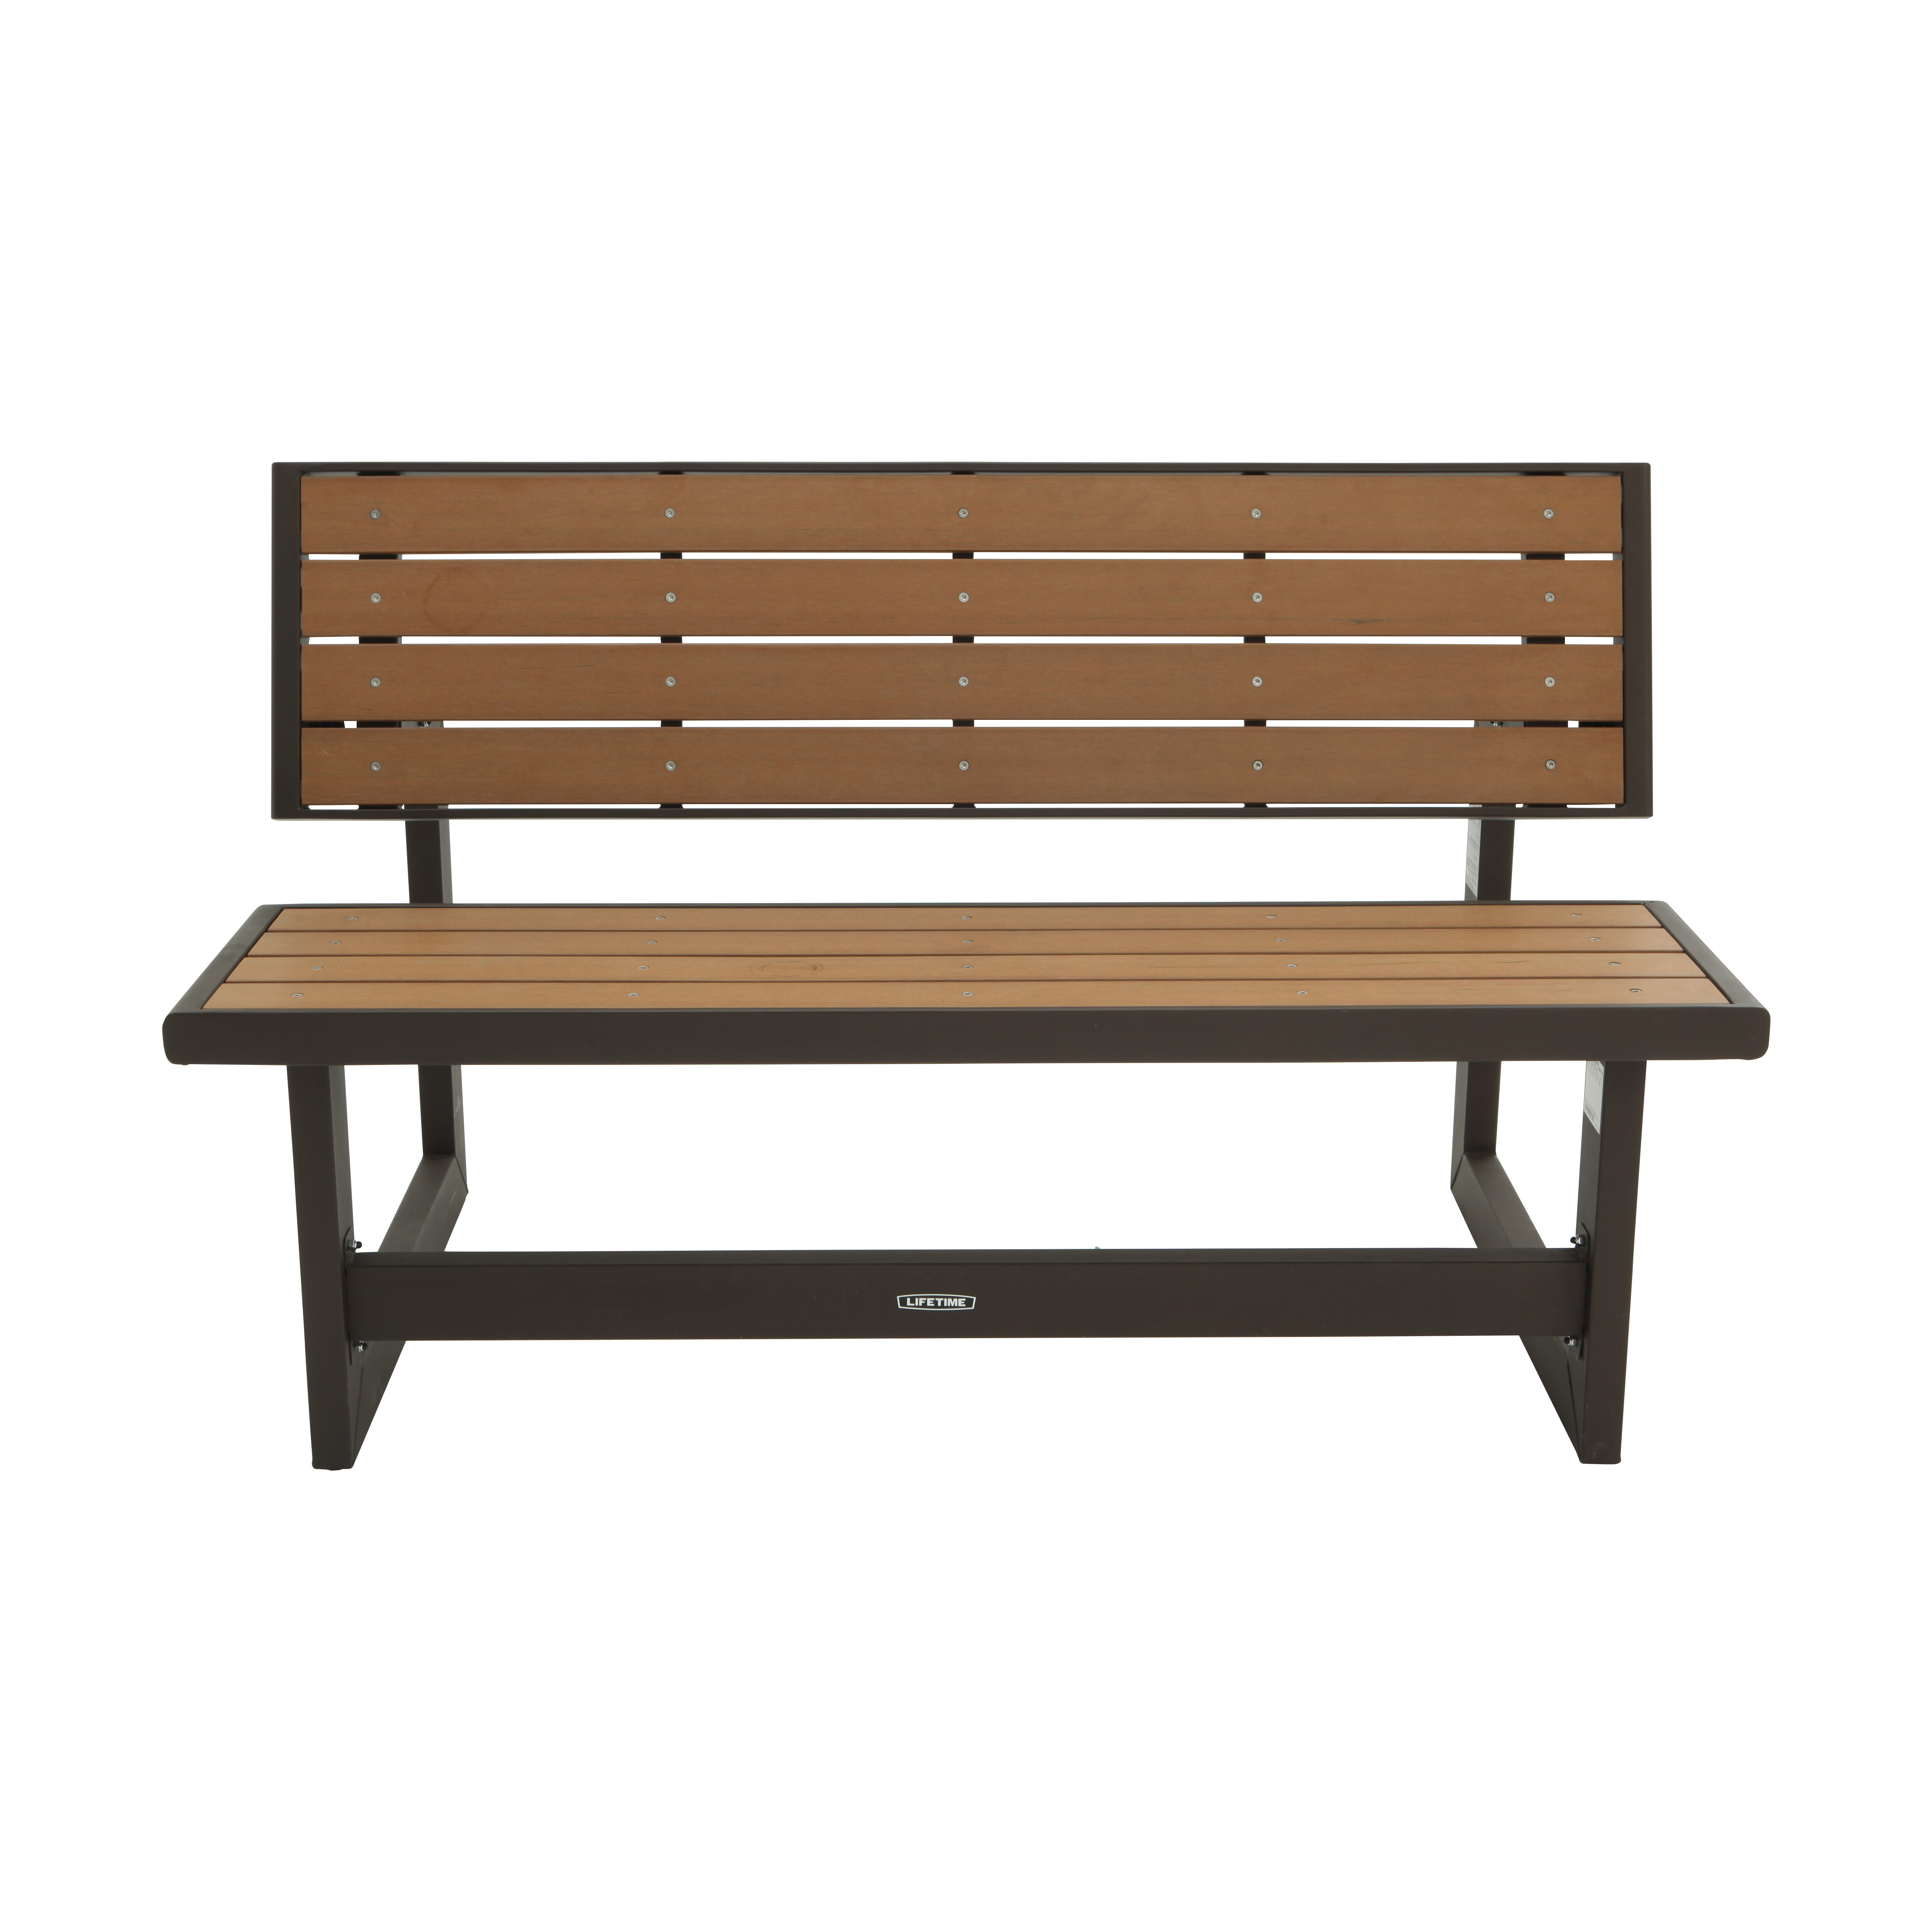 Superb Lifetime Convertible Bench Reviews Wayfair Gmtry Best Dining Table And Chair Ideas Images Gmtryco